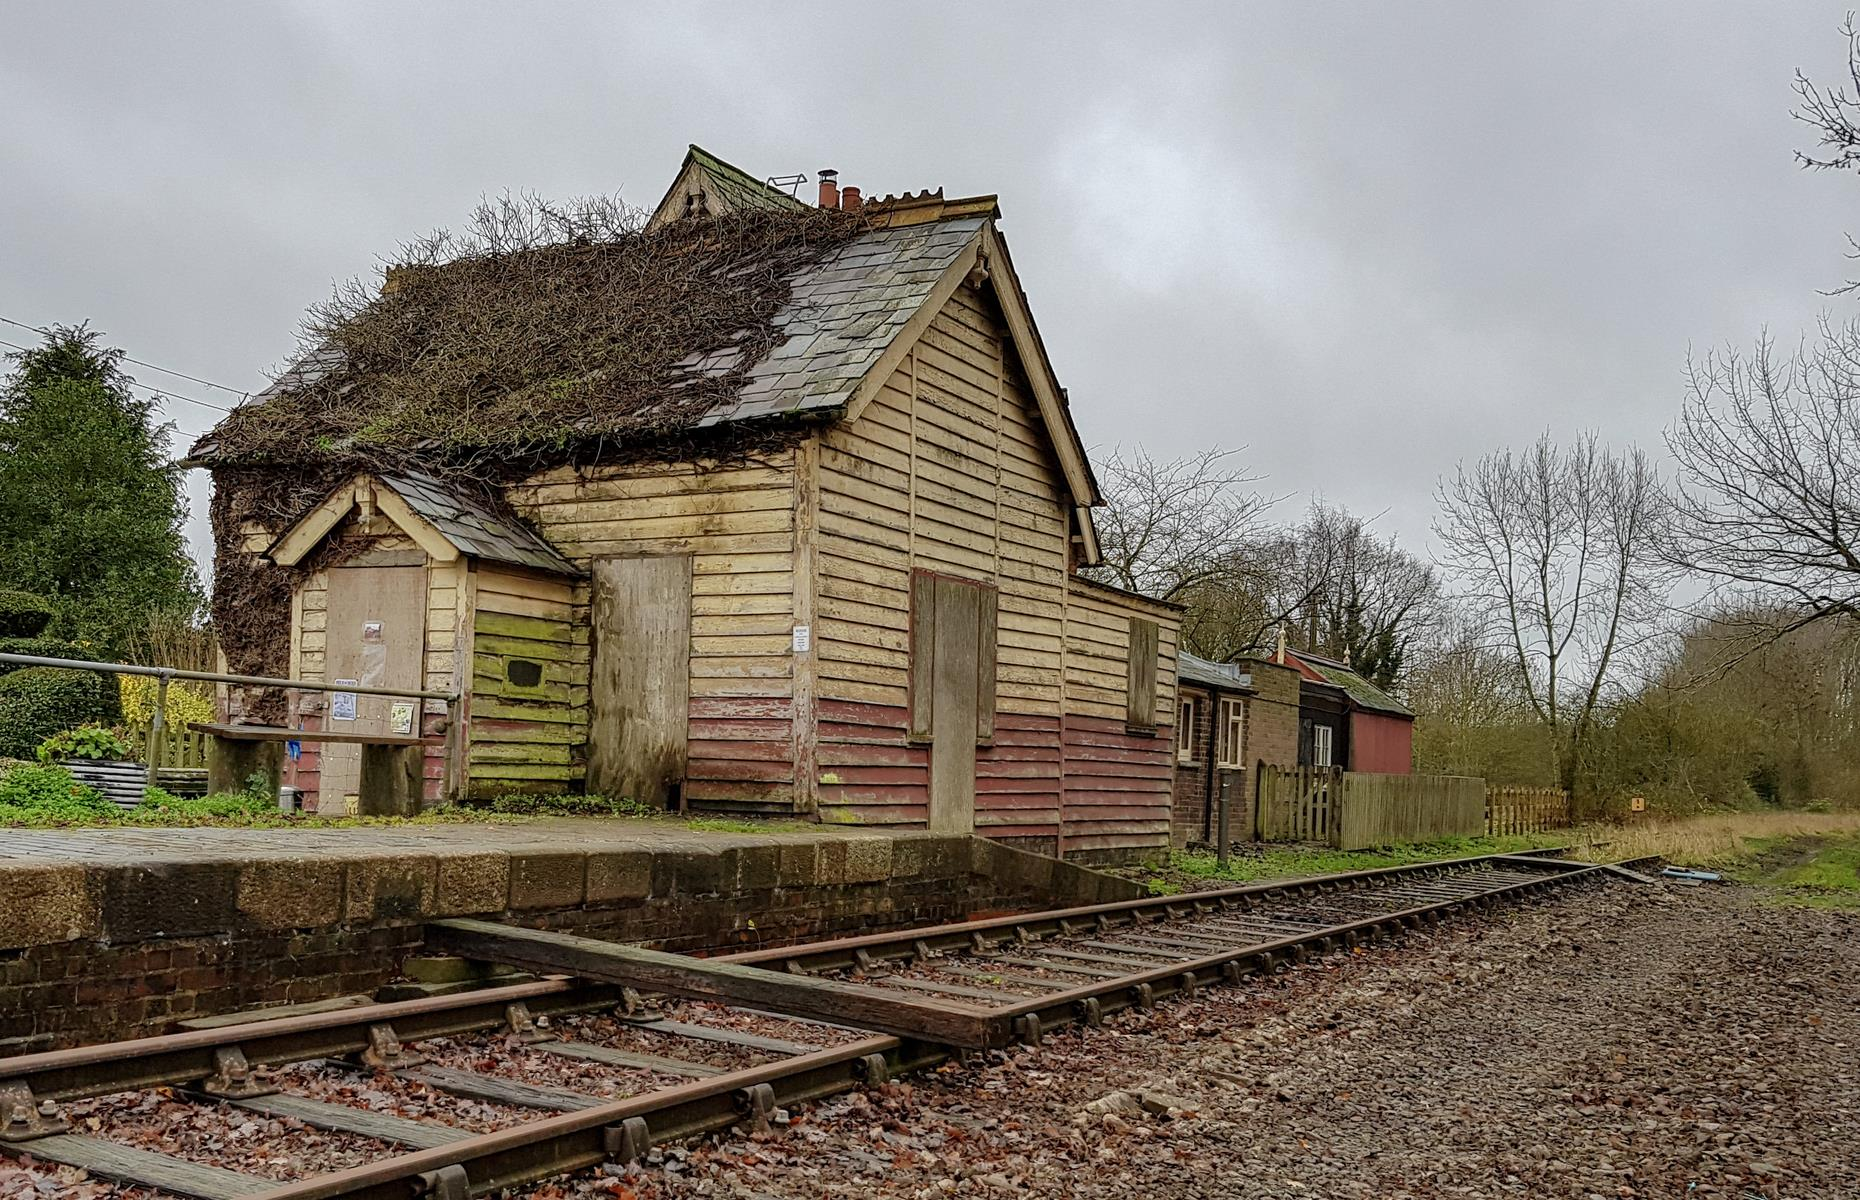 Slide 16 of 33: No one has alighted onto the platform at this remote and rural station in Buckinghamshire since 1968, though the buildings remain, derelict and unused. The station, which is actually a mile away from the village of Swanbourne, was on the Oxford to Bletchley line and operated by Buckinghamshire Railway when it opened in the 1800s.